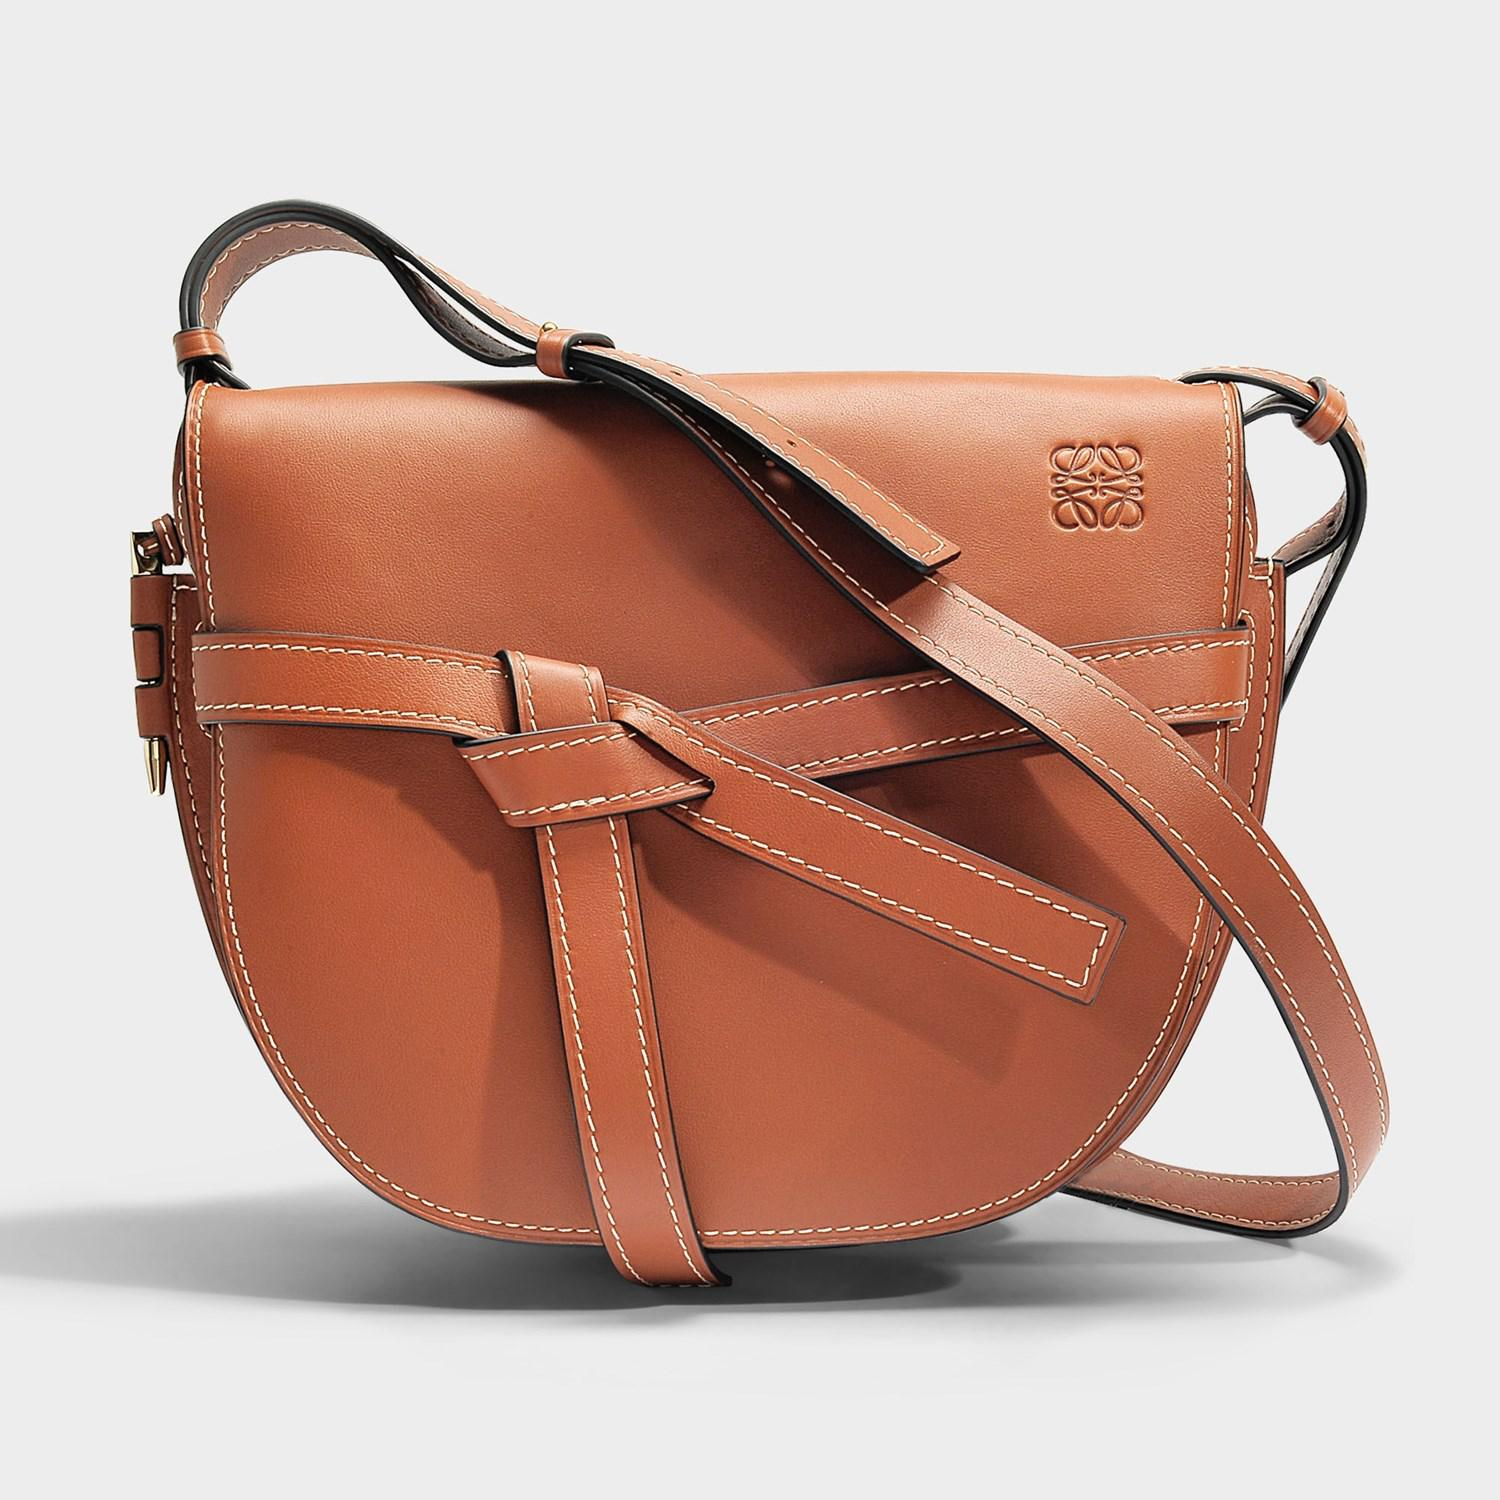 Quality Free Shipping Low Price Genuine Gate Small Bag in Rust Soft Natural Calf Loewe Cheap Real Finishline Cheap Sale Cheap Great Deals Cheap Online 0GN4NpH